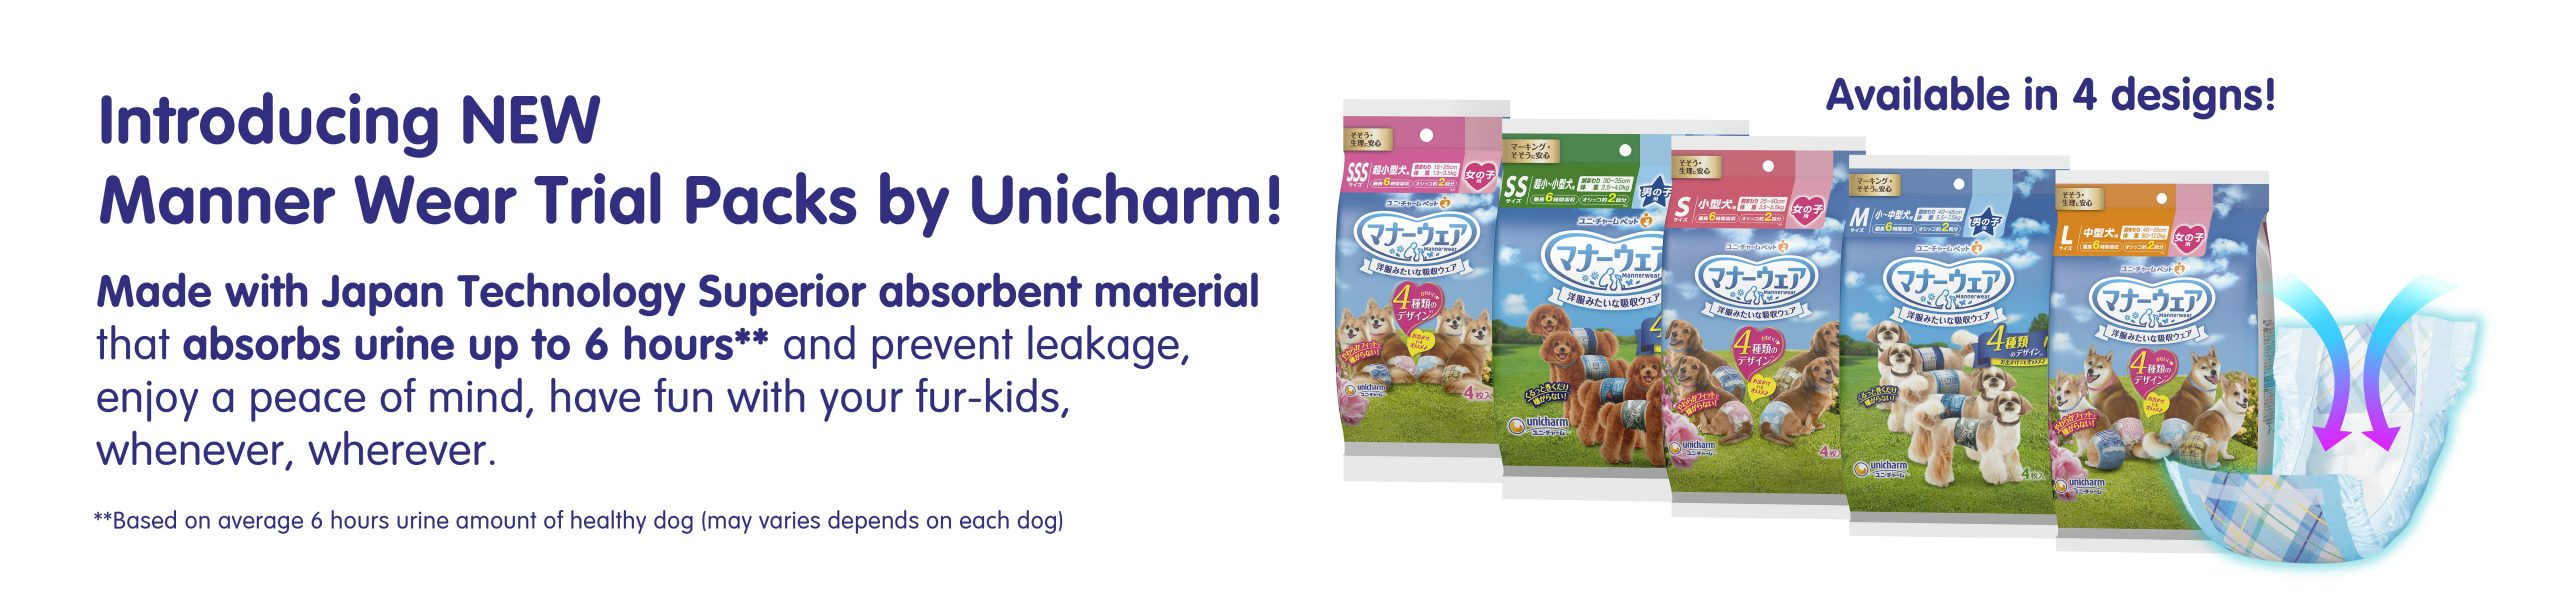 Unicharm Manner Wear - Now In Trial Packs!